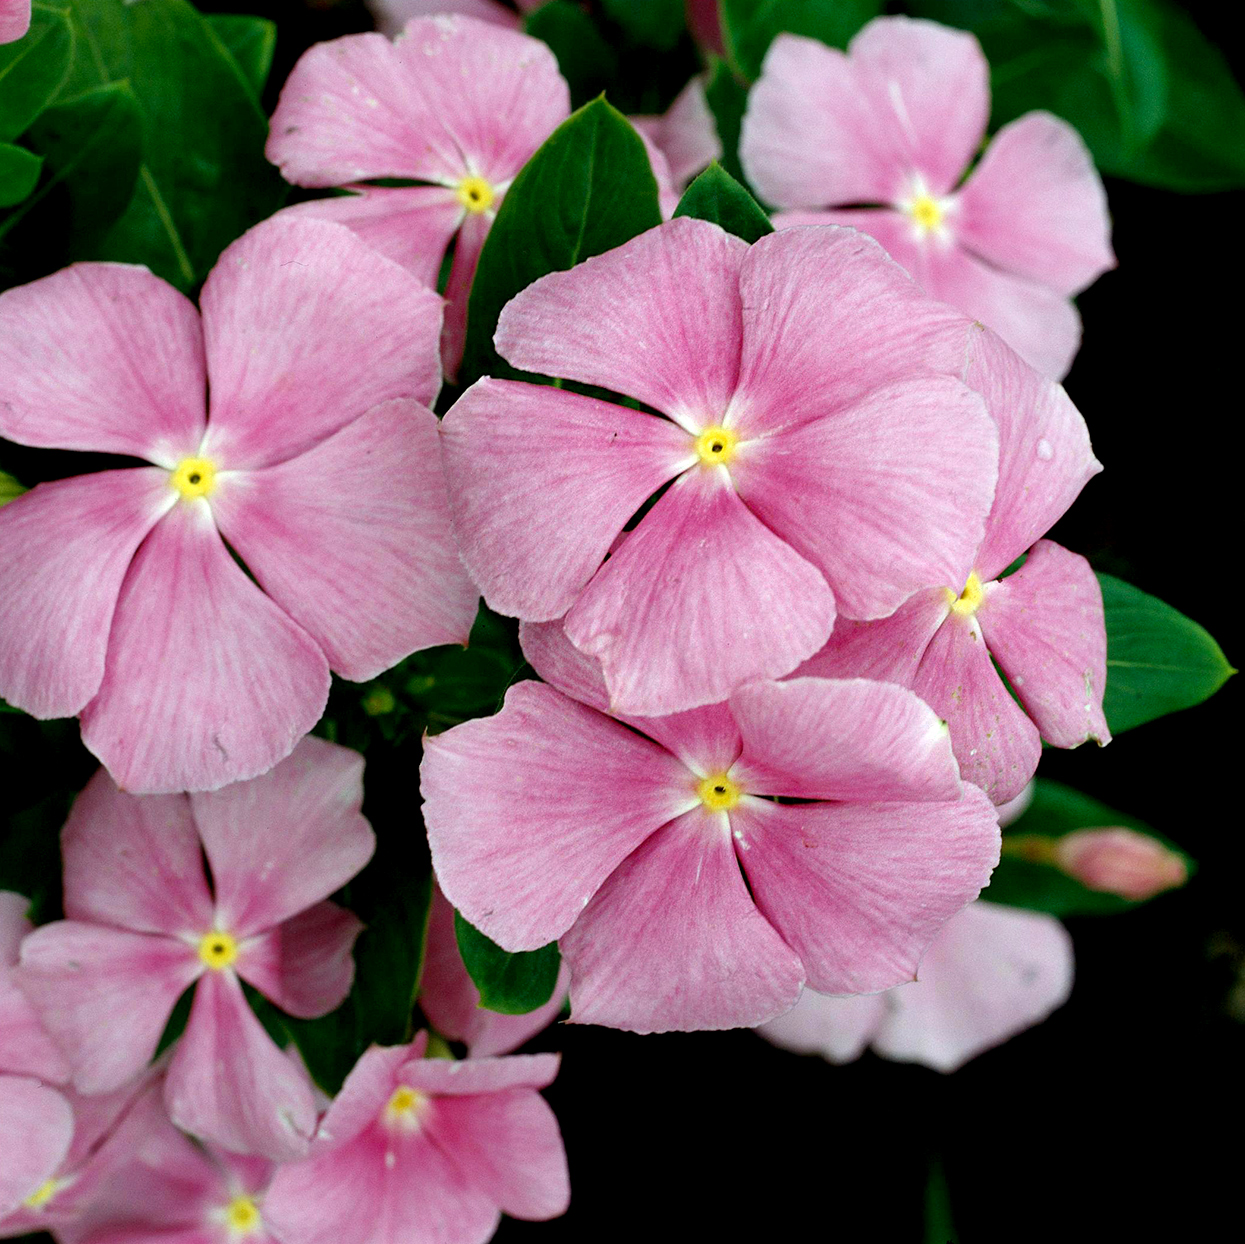 Catharanthus 'Pretty in Pink' vinca